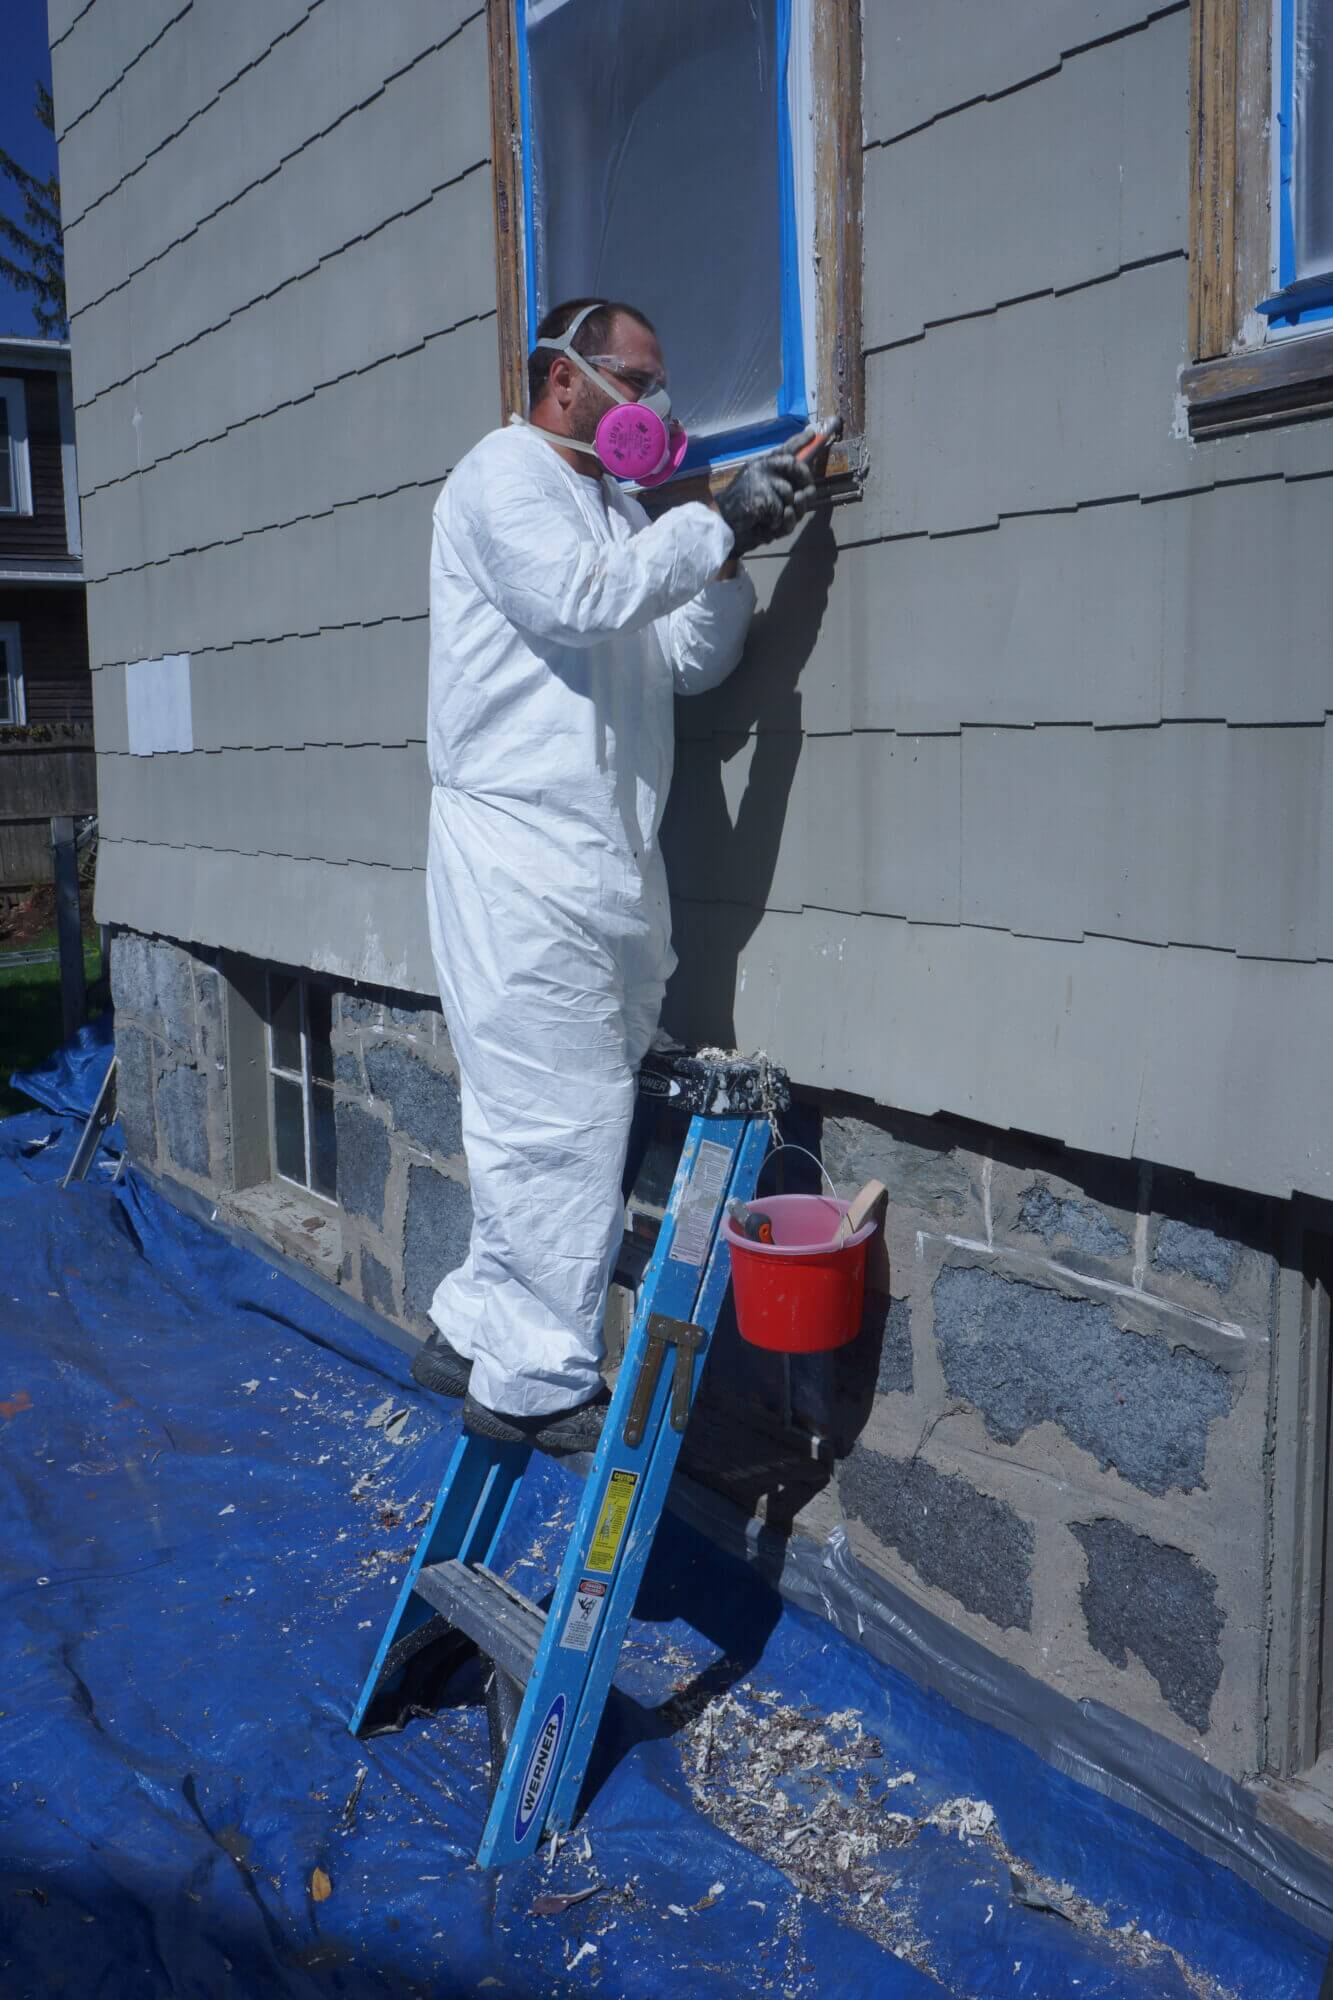 Catchlight employee working on trim of home exterior